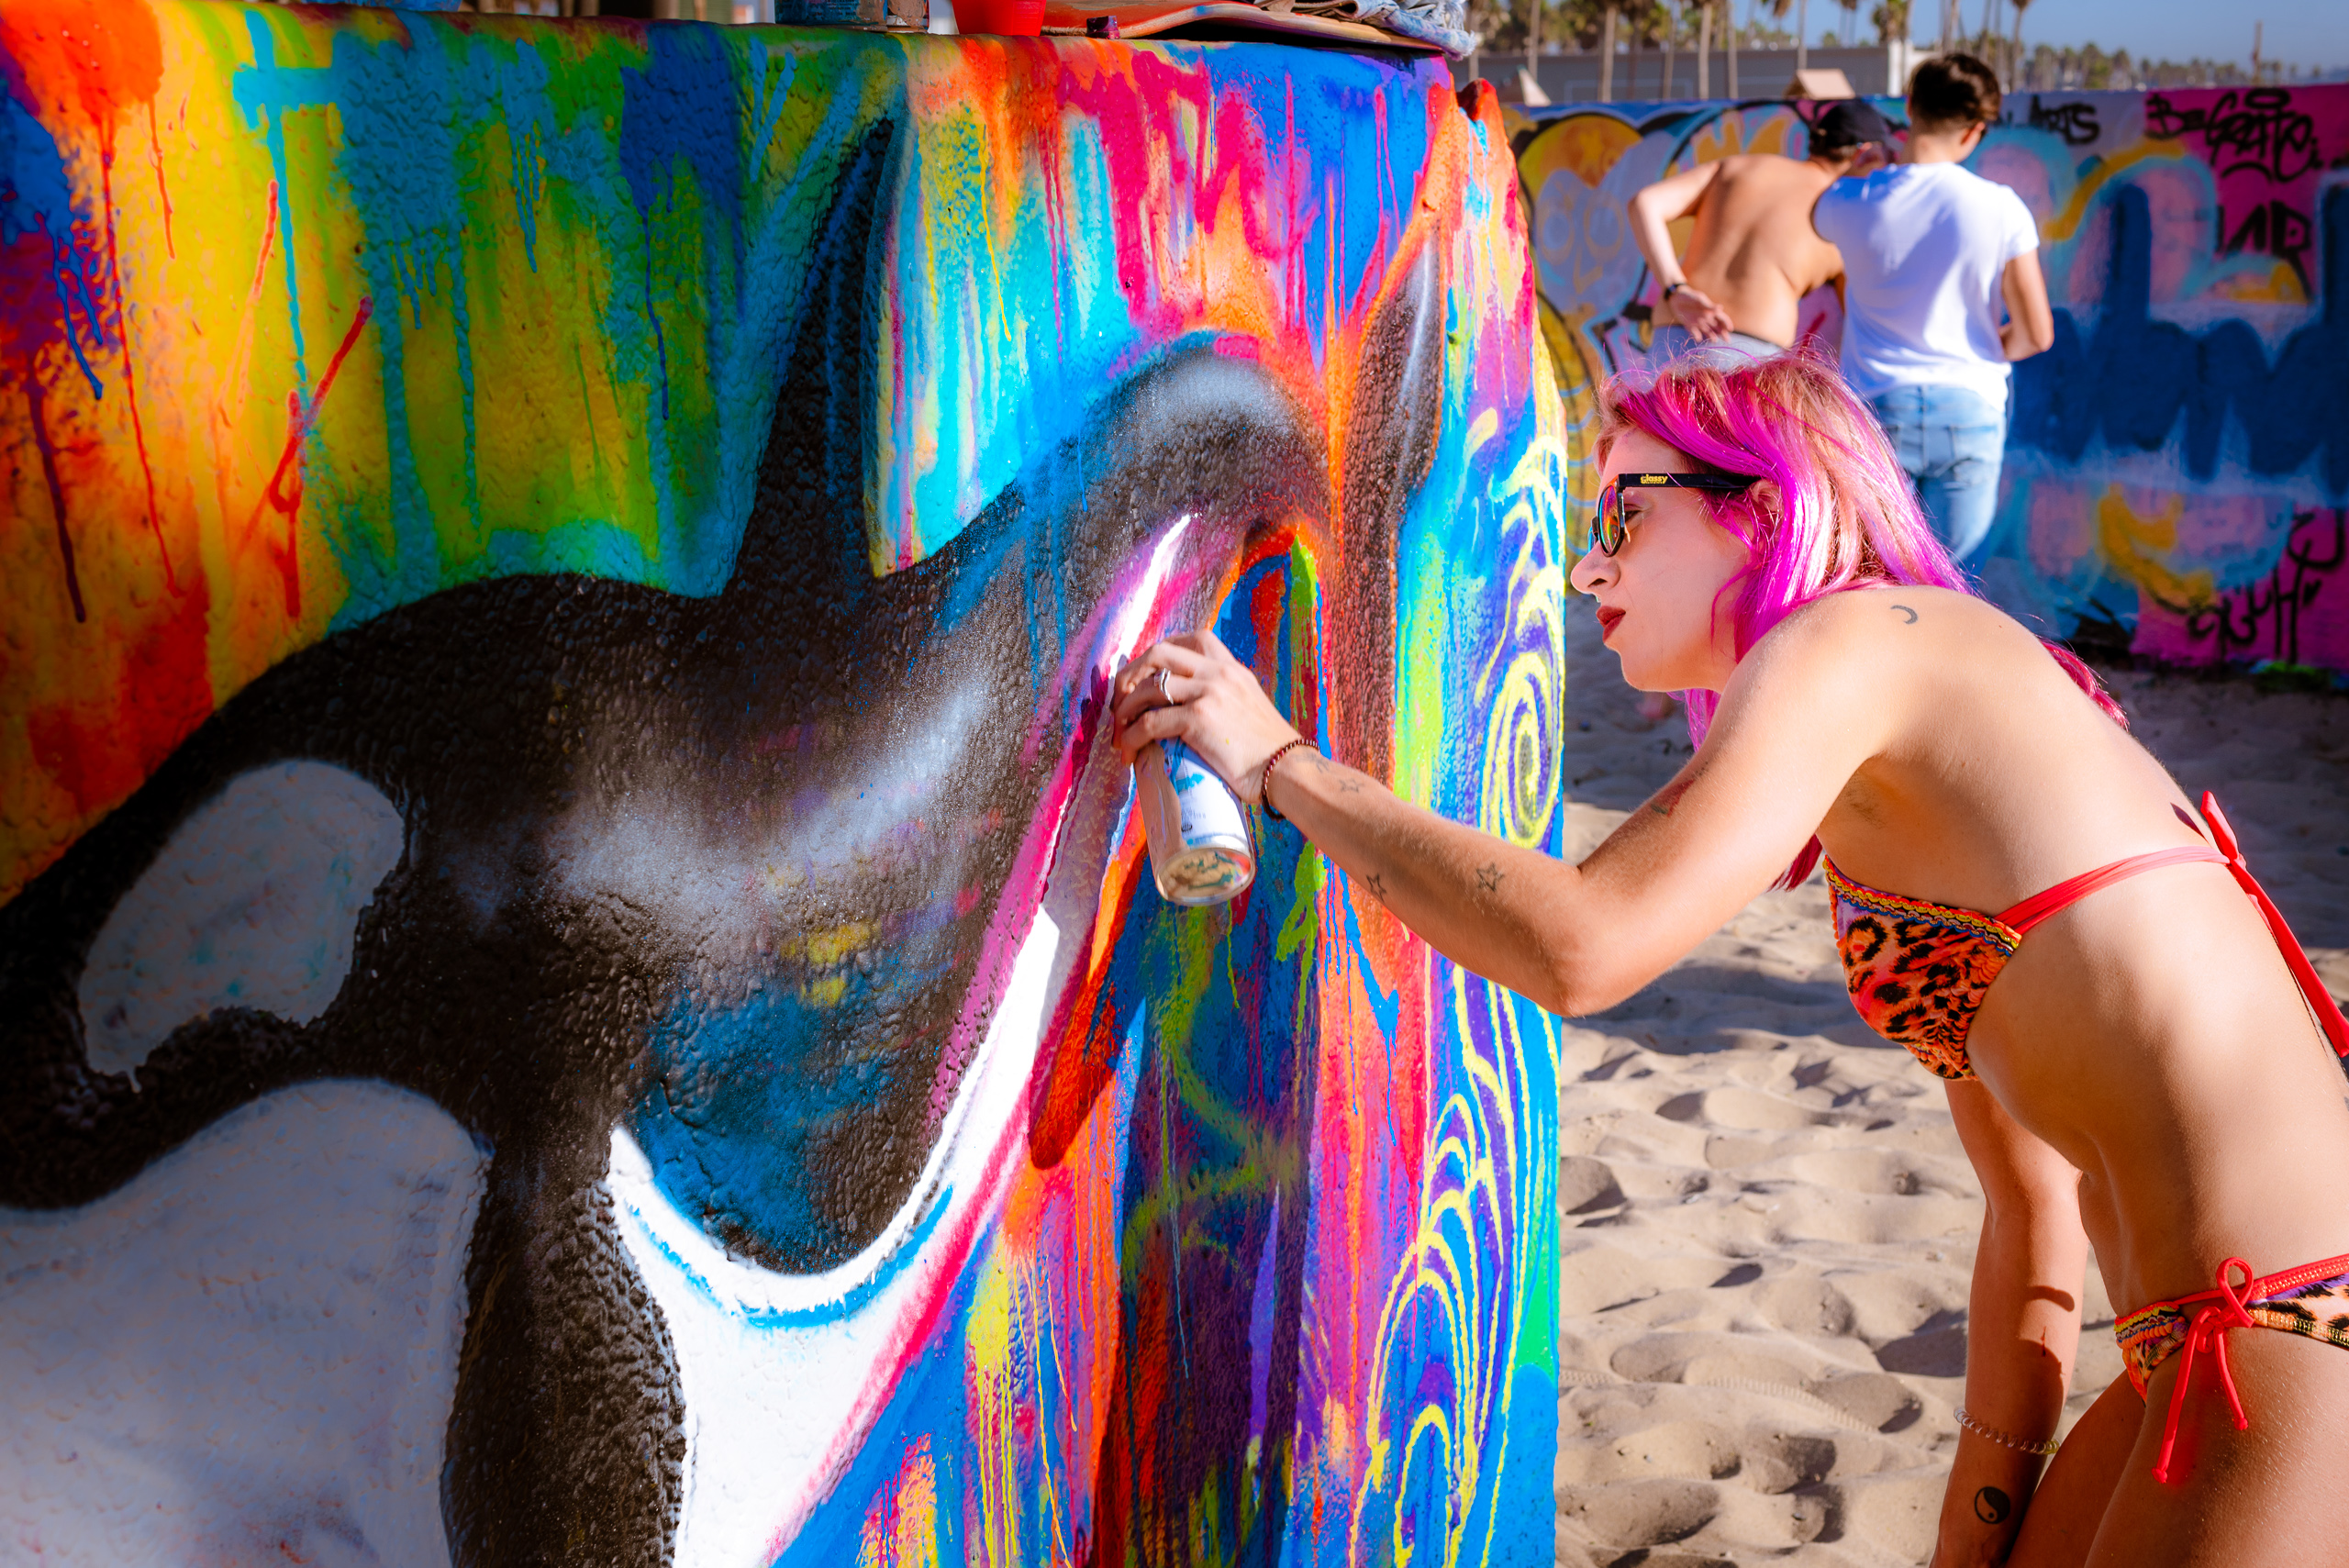 Lizzie Green, @6lizabeth3, painting a whale piece with a color field background at the Venice Beach Art Walls in Los Angeles, CA